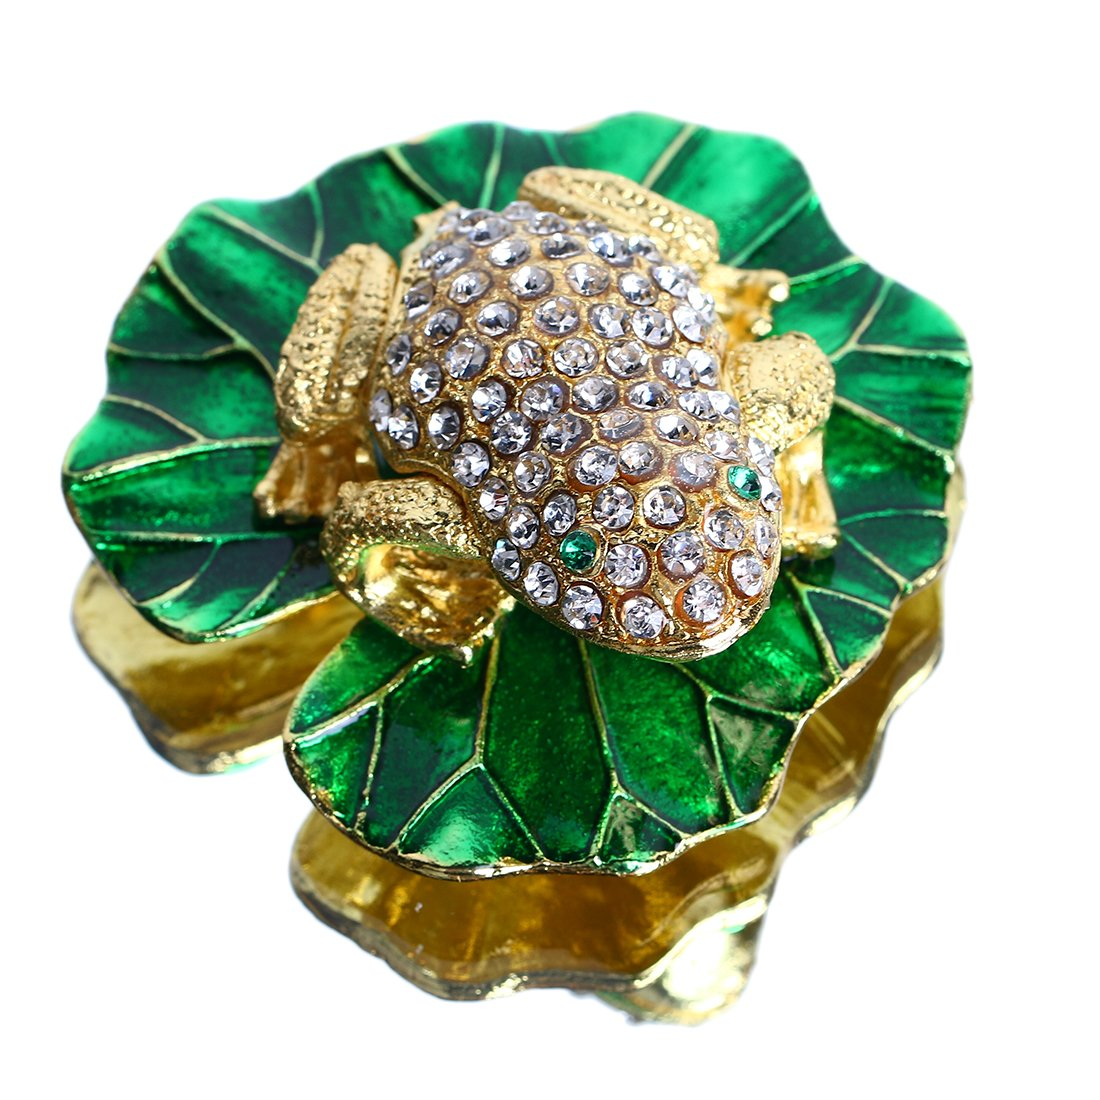 YUFENG Enamel with Crystals Animal Frog Trinket Box Hinged for Women,Bejeweled Jeweled Collectible Trinket Box (gold frog)